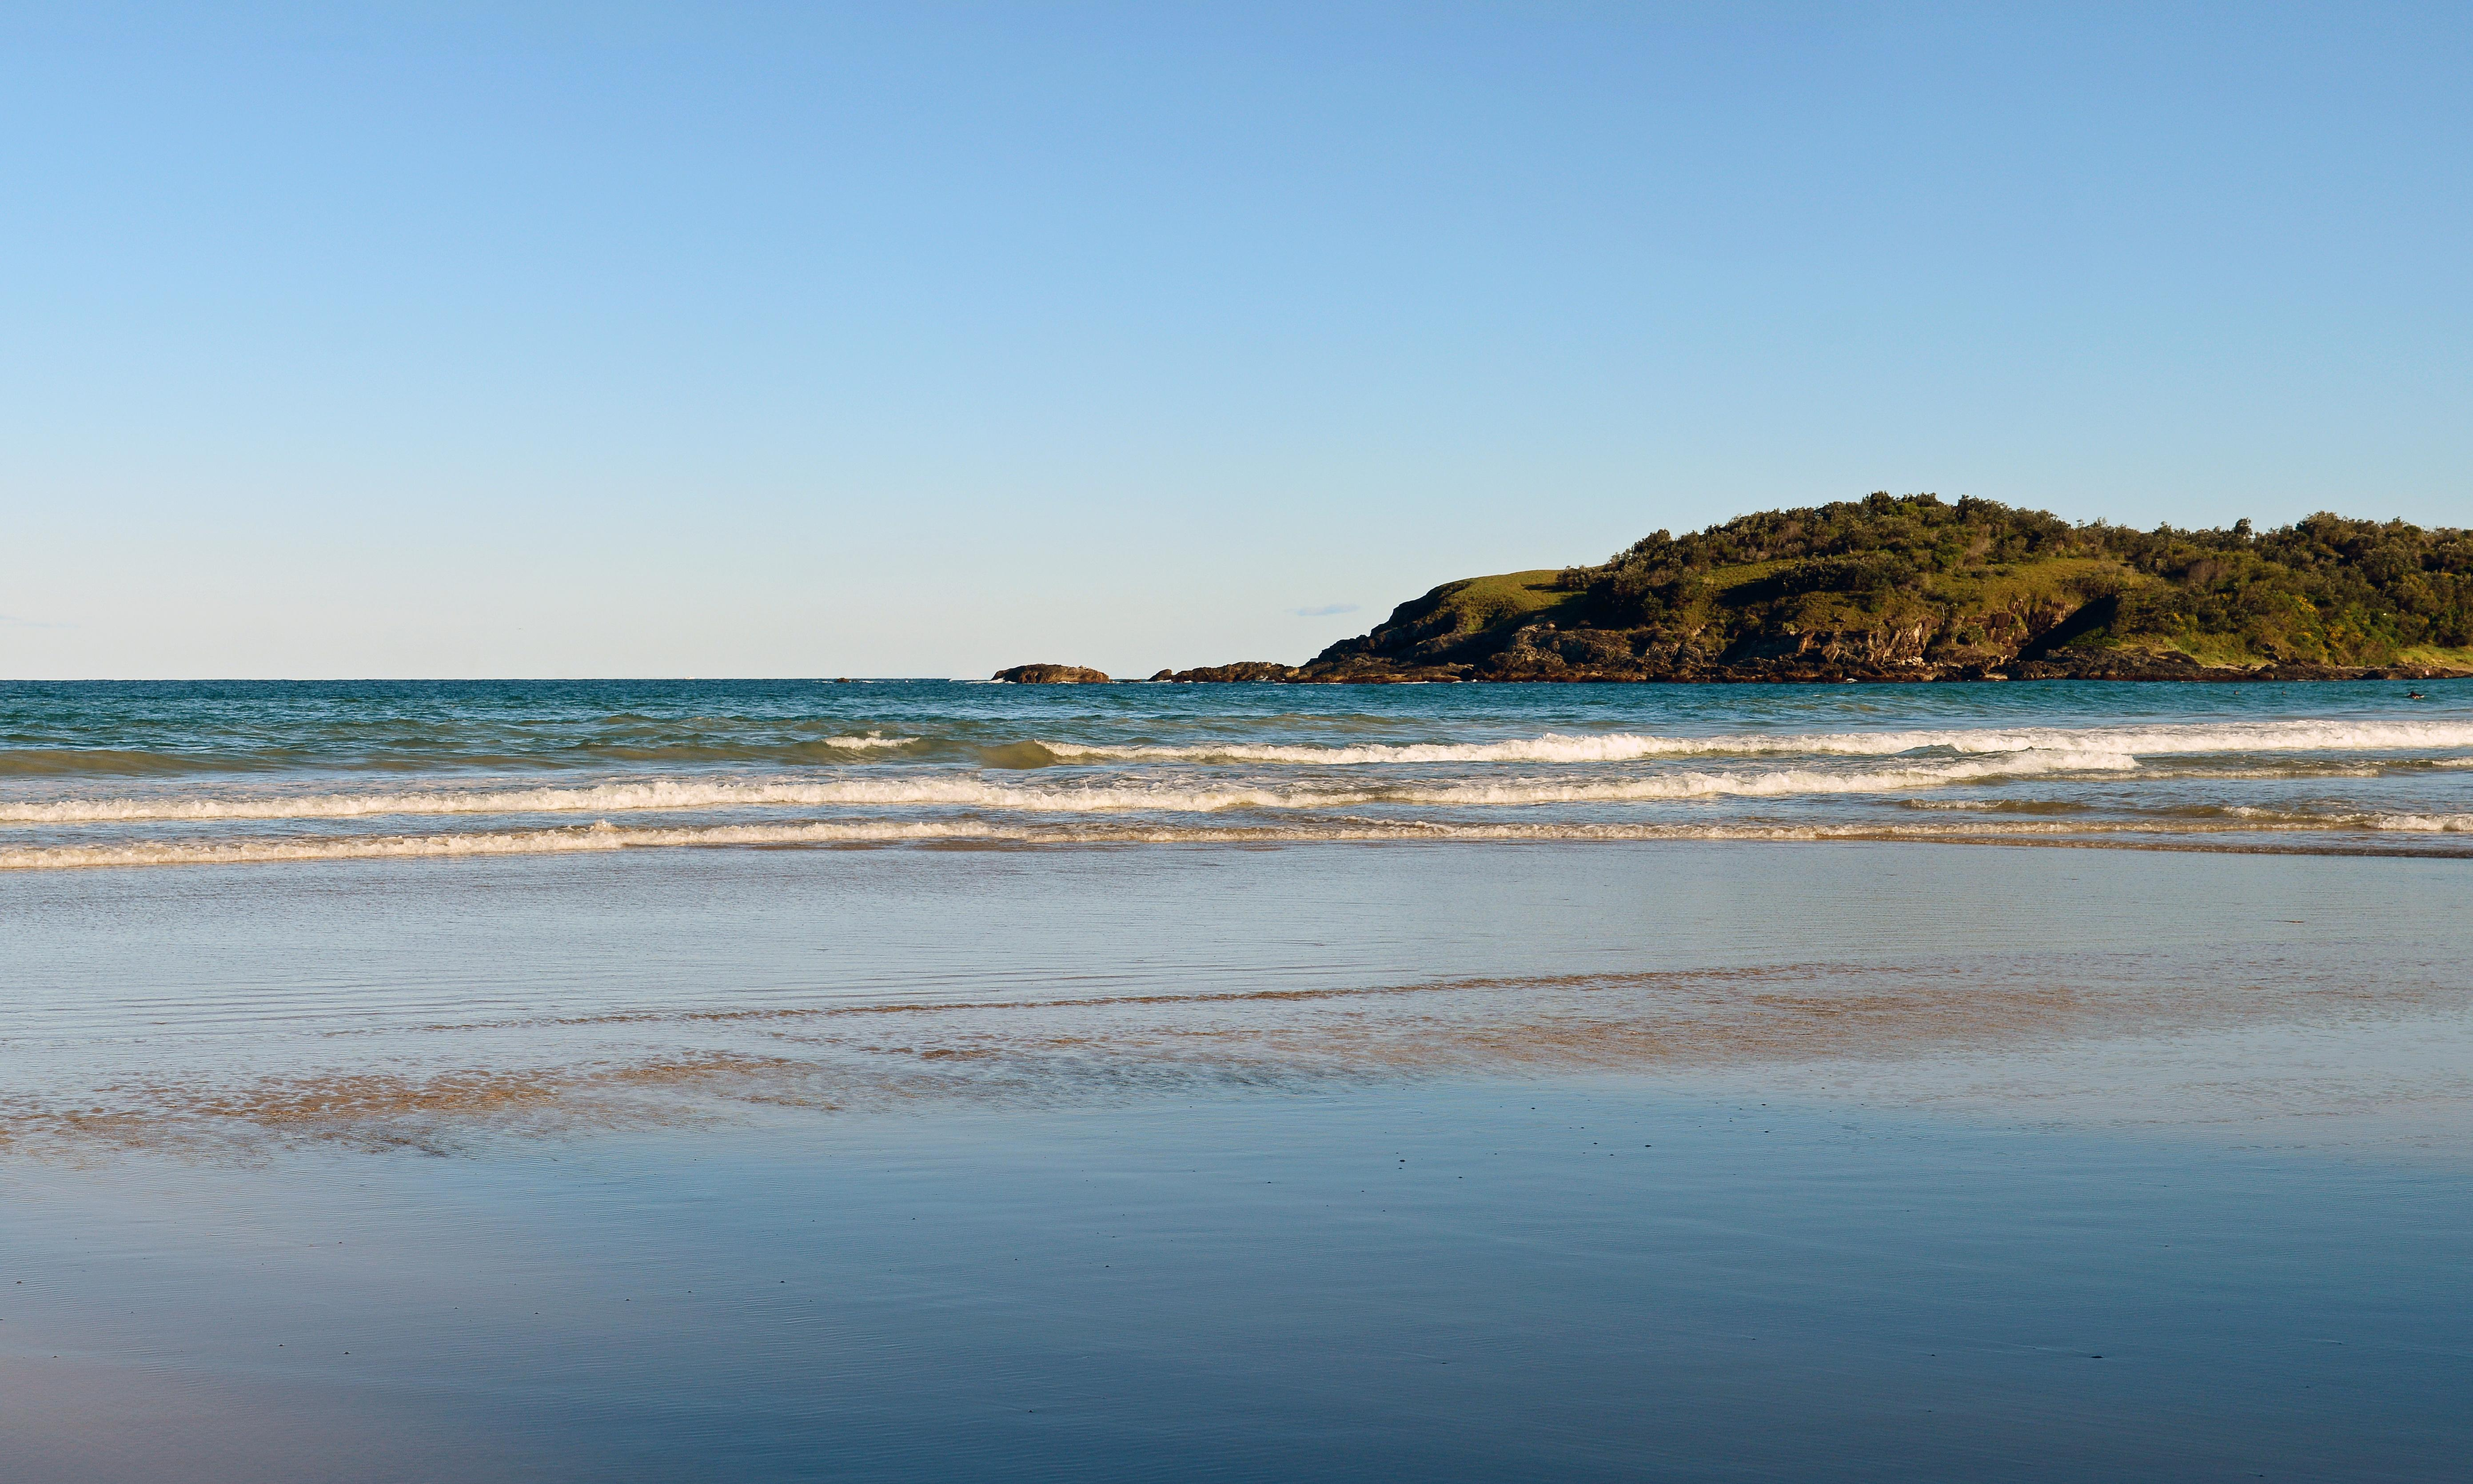 Two drown, one missing, at Moonee Beach on NSW mid-north coast